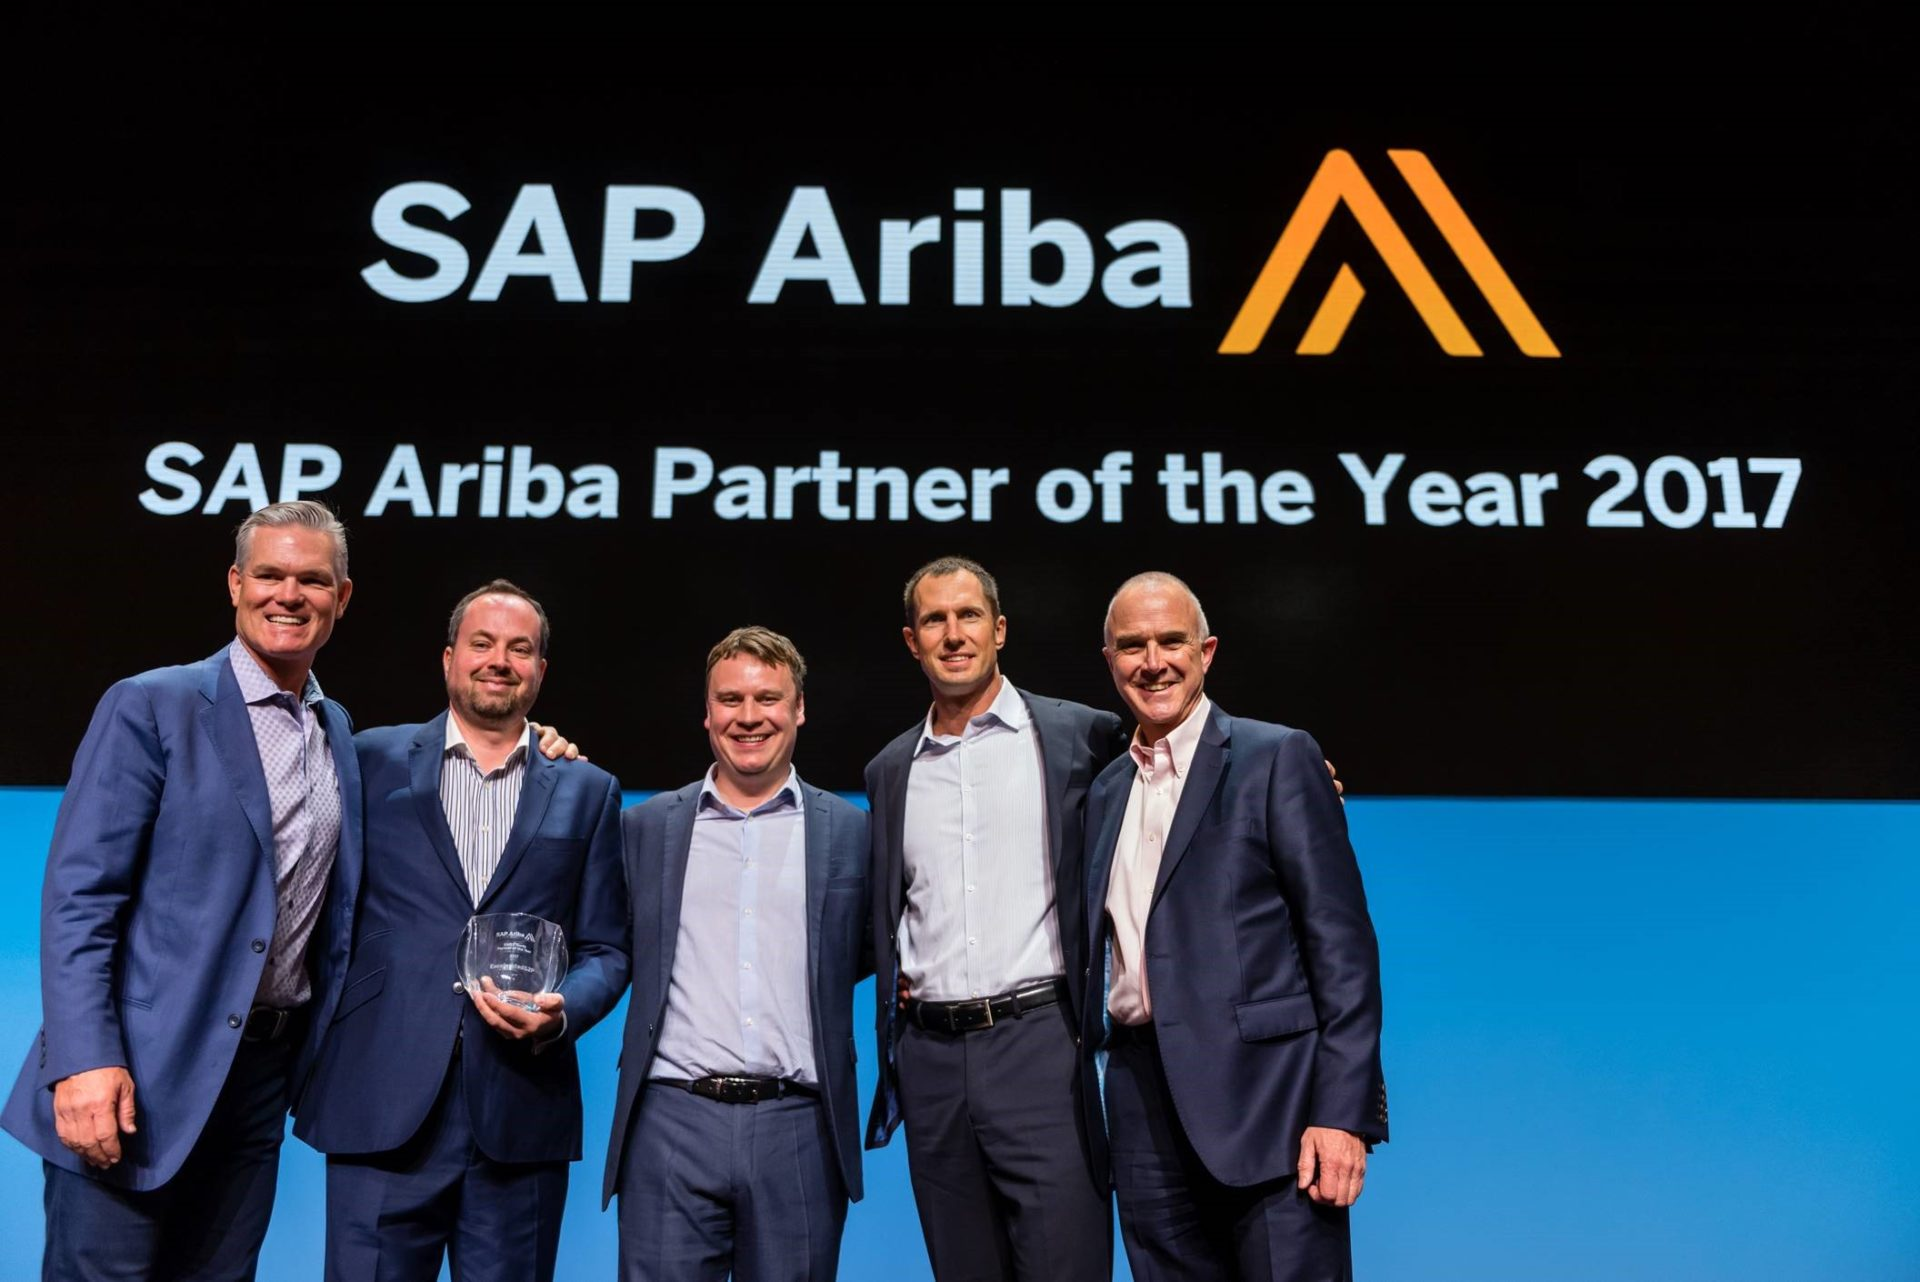 SAP Ariba Partner of the Year graphic. ExceleratedS2P is proud to be recognised for our work with SAP Ariba P2P solutions.